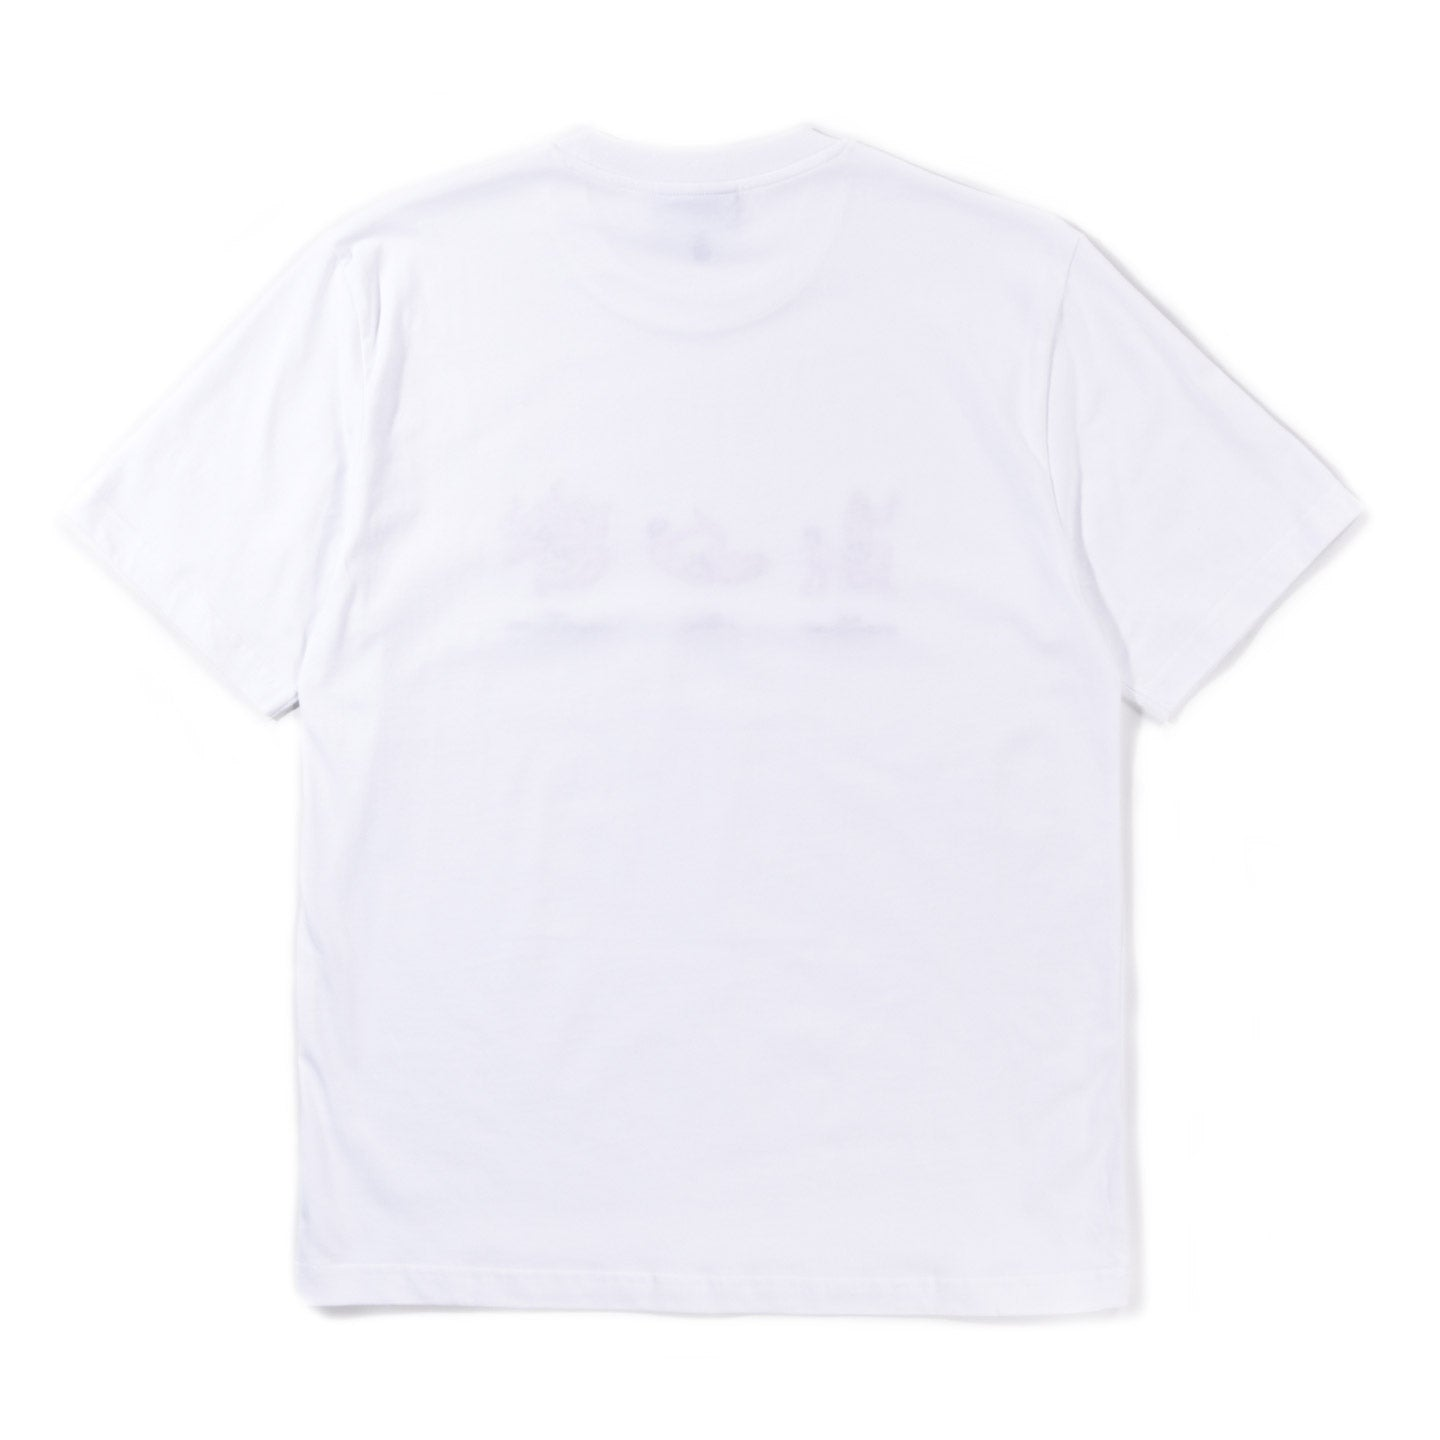 CARNE BOLLENTE AFTERNOON DELIGHT T-SHIRT WHITE